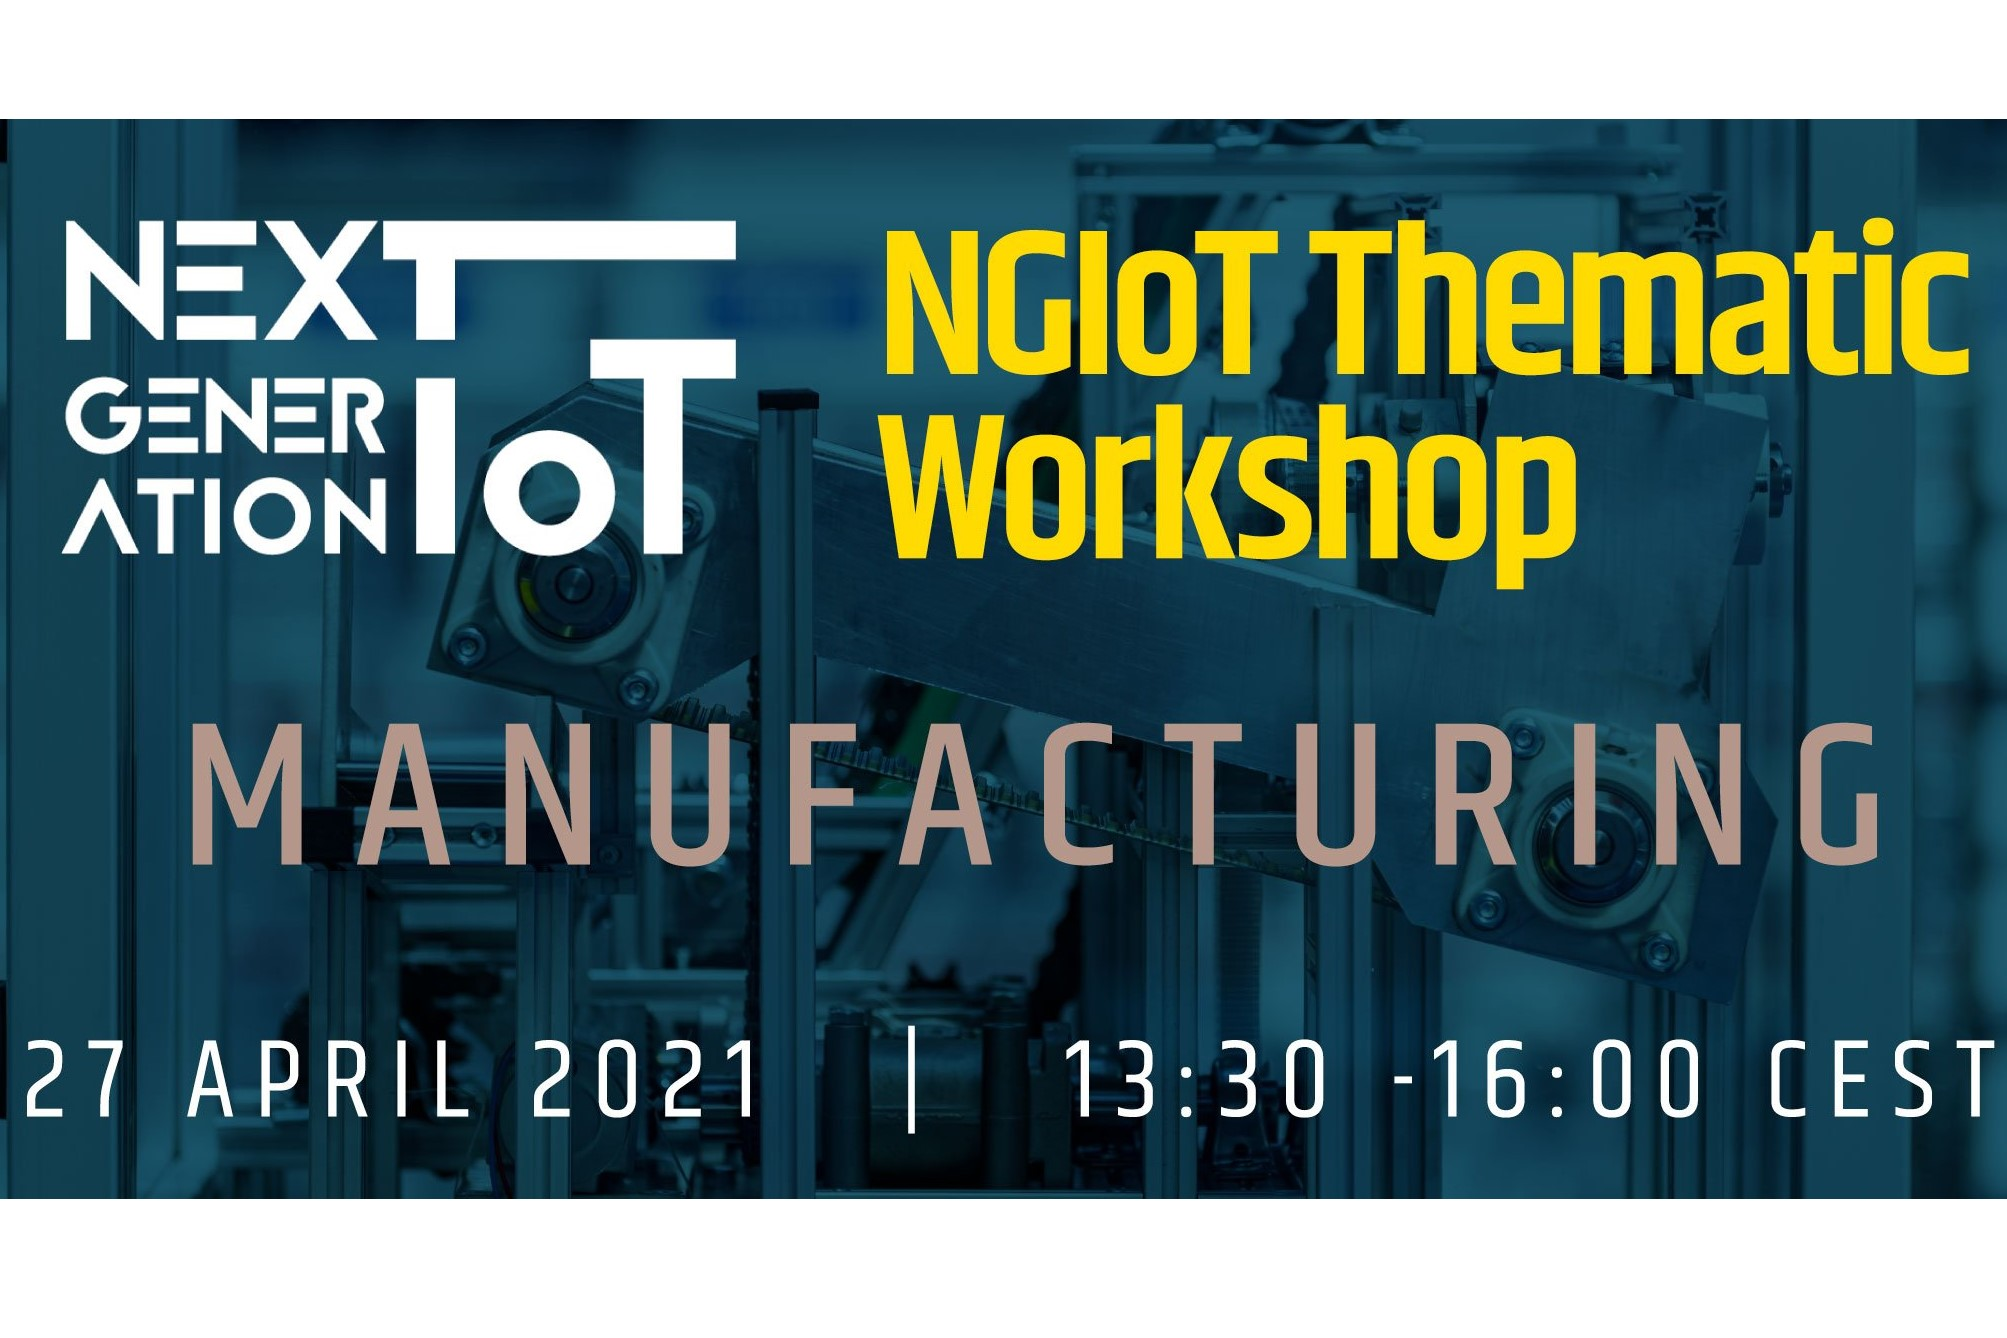 OPEN DEI @ NGIoT Thematic Workshop on Manufacturing